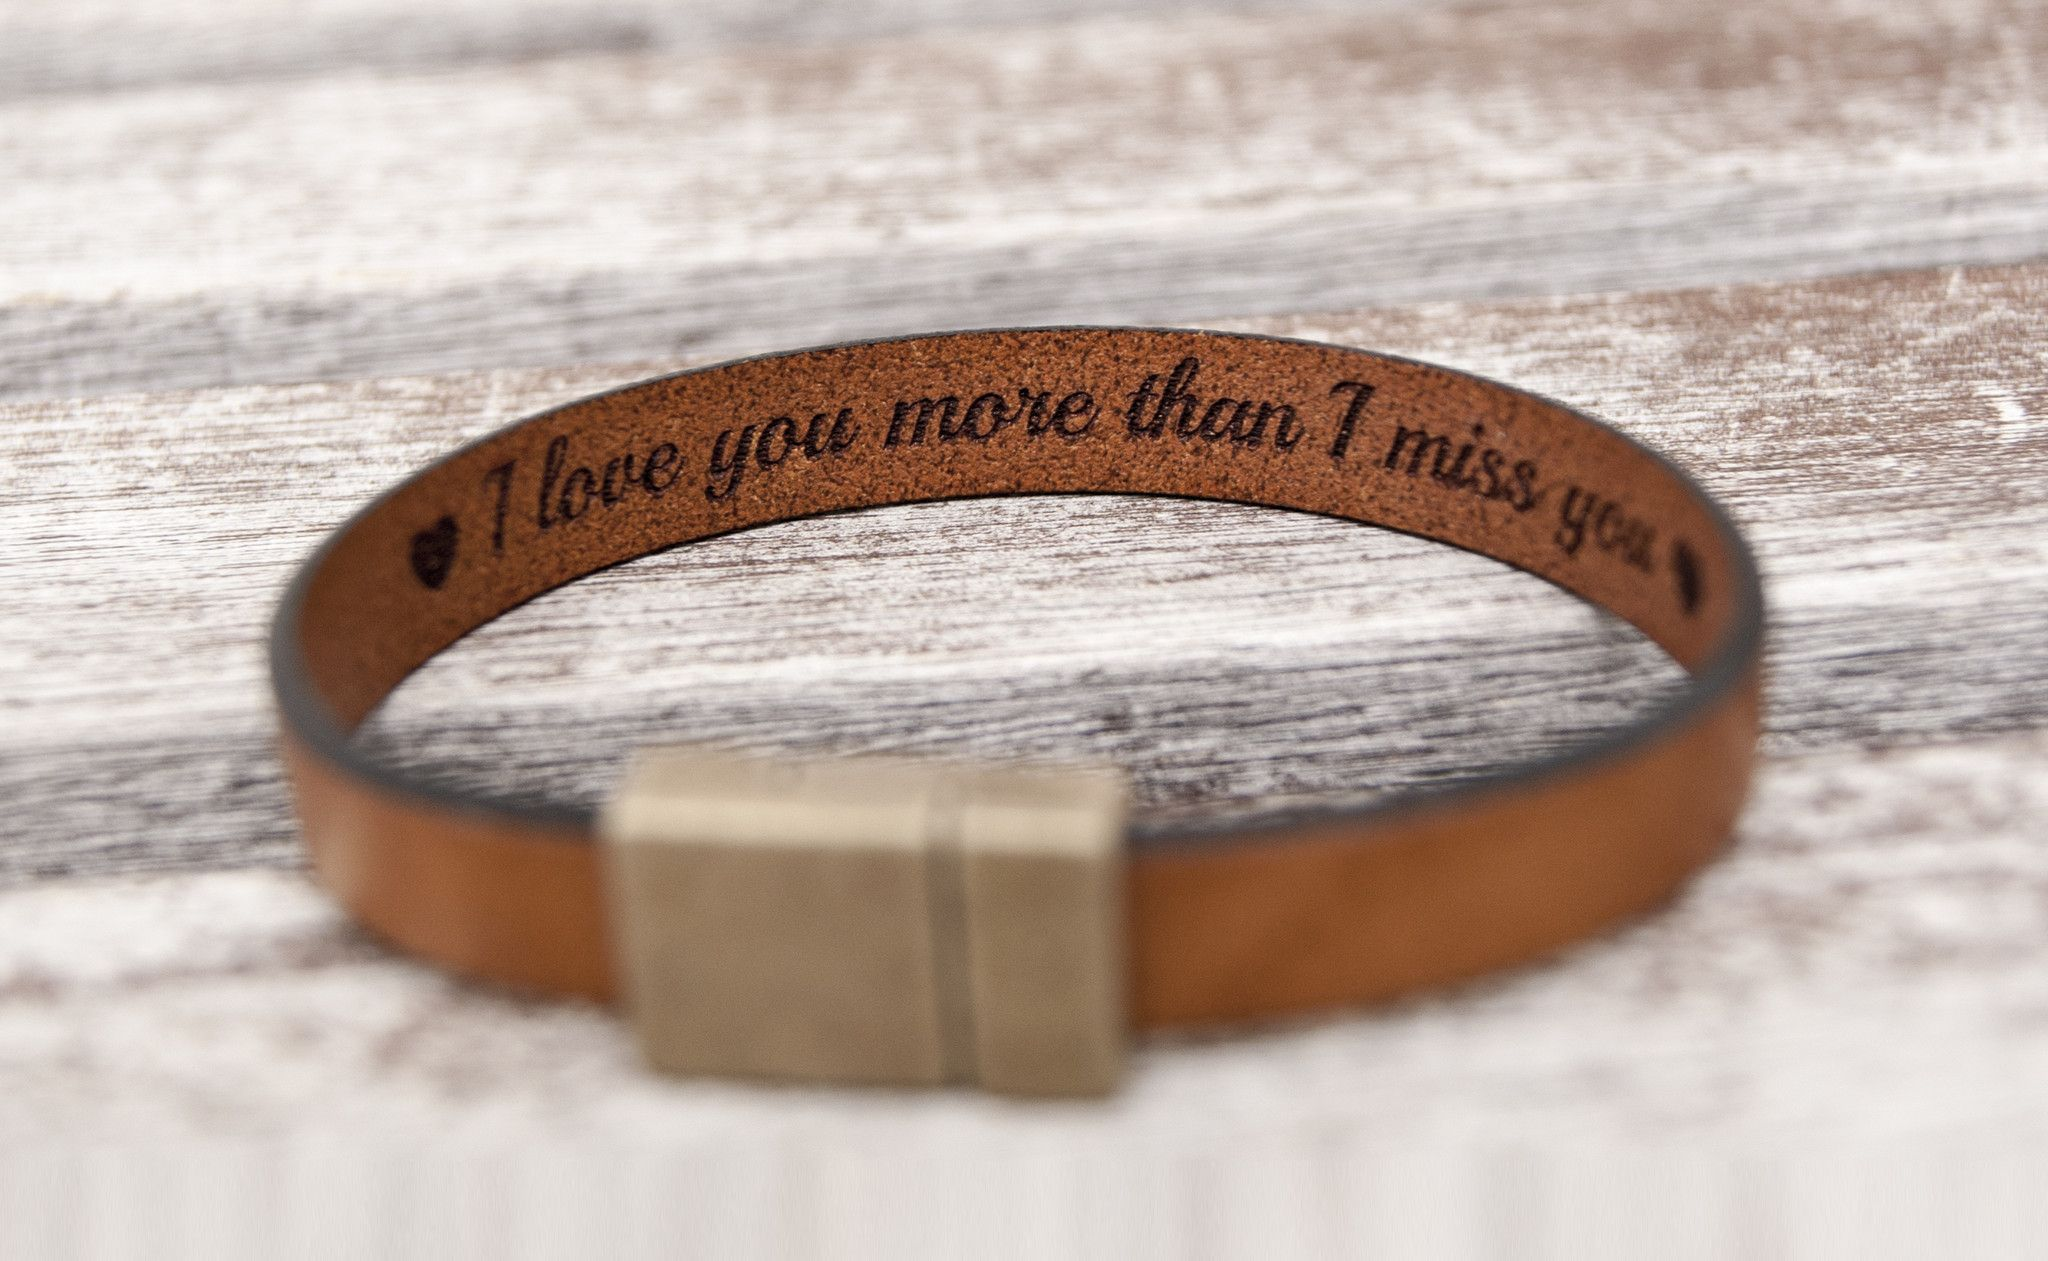 e439fea6b92b Hidden Secret Message Personalized Leather Bracelet - Tap The Link Now To  Find The Gift